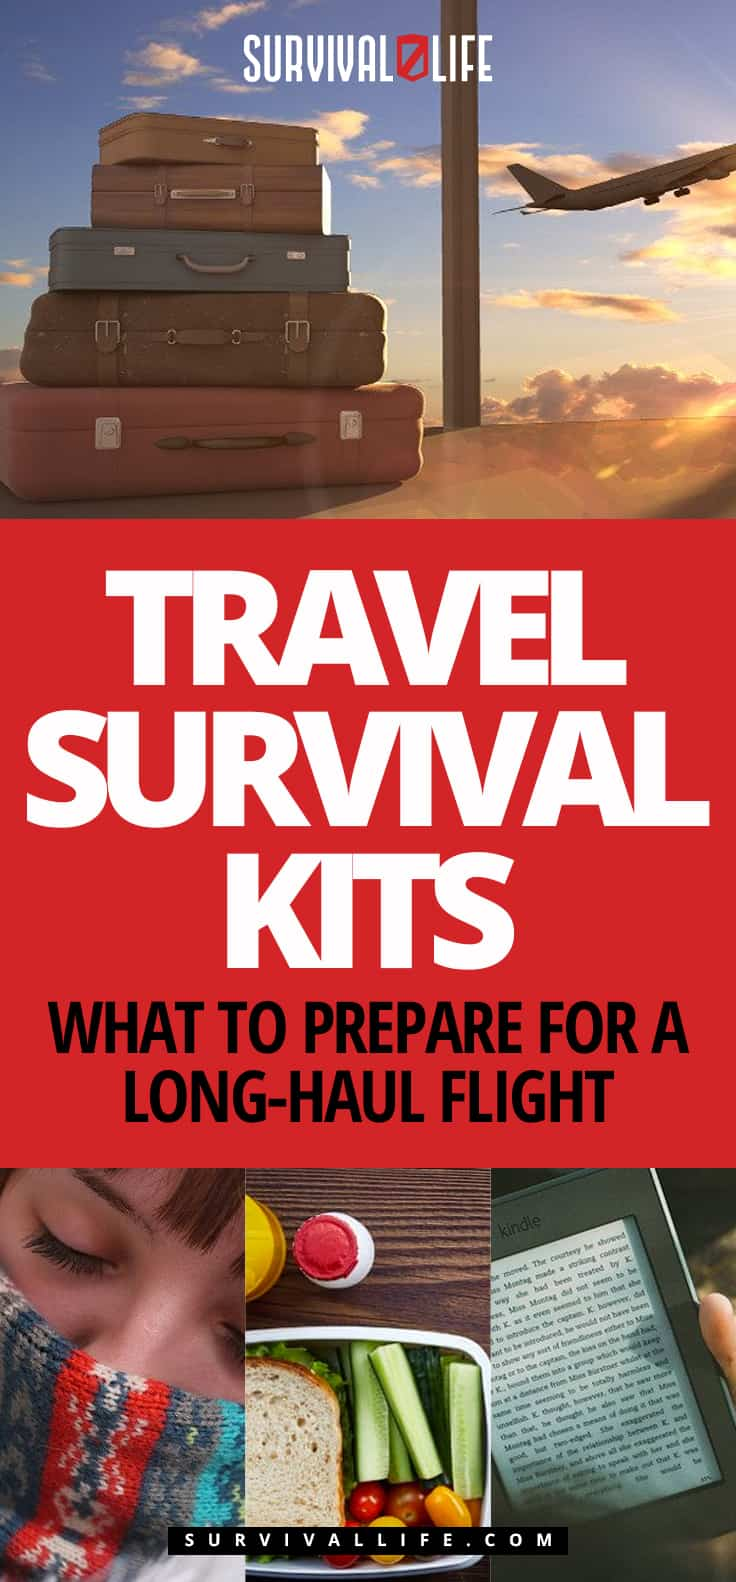 Travel Survival Kits | What To Prepare For A Long-Haul Flight